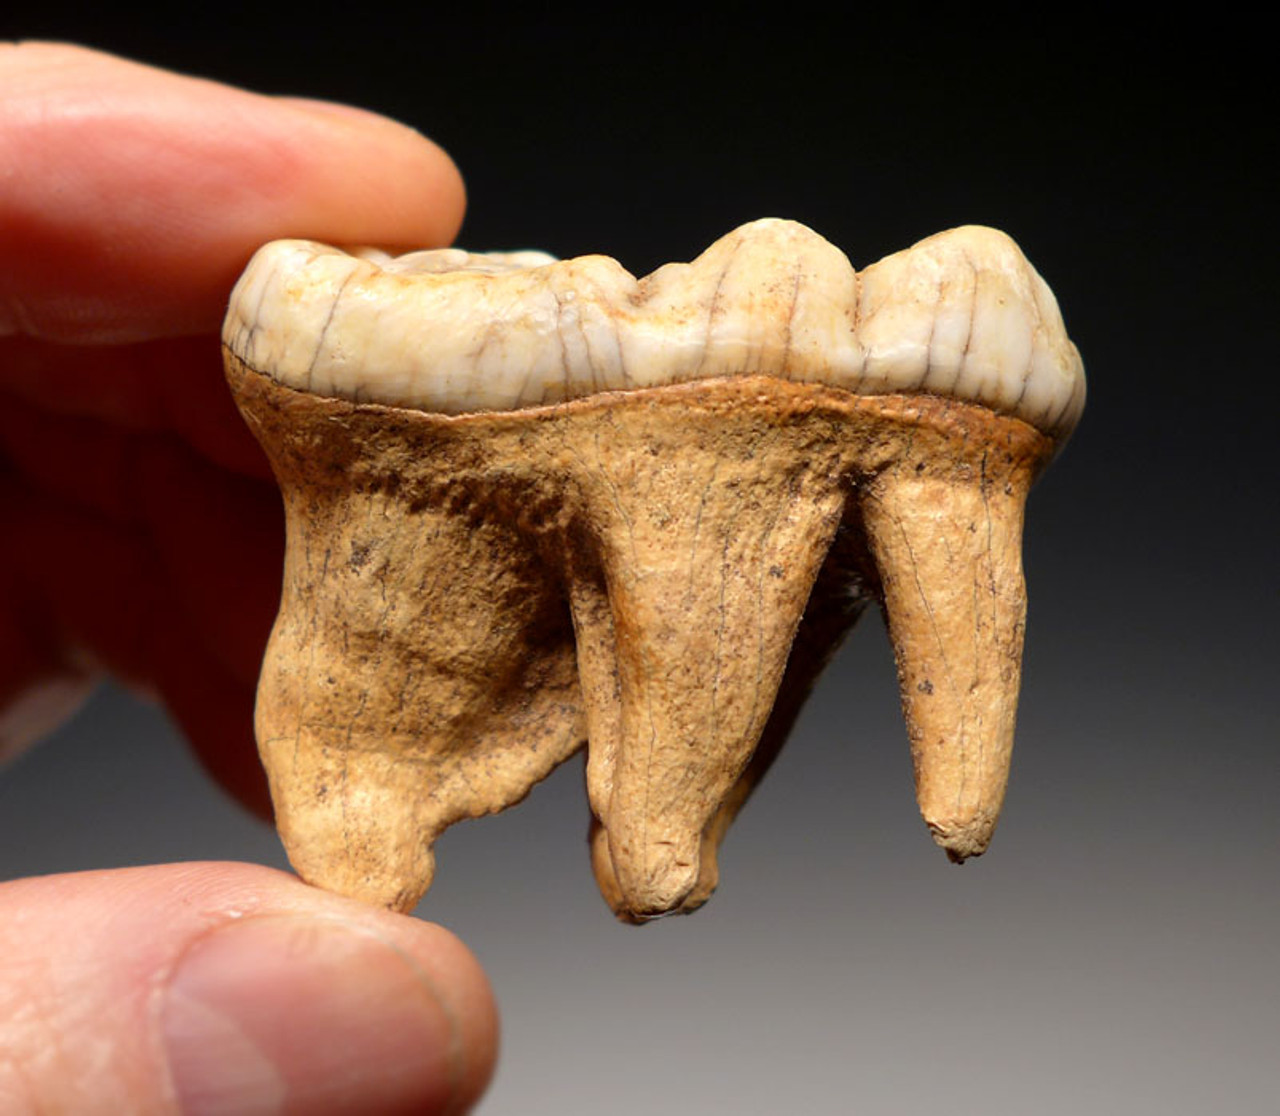 LM40-154 - FINEST LARGE EUROPEAN CAVE BEAR PRIMARY MOLAR WITH FULL ROOT